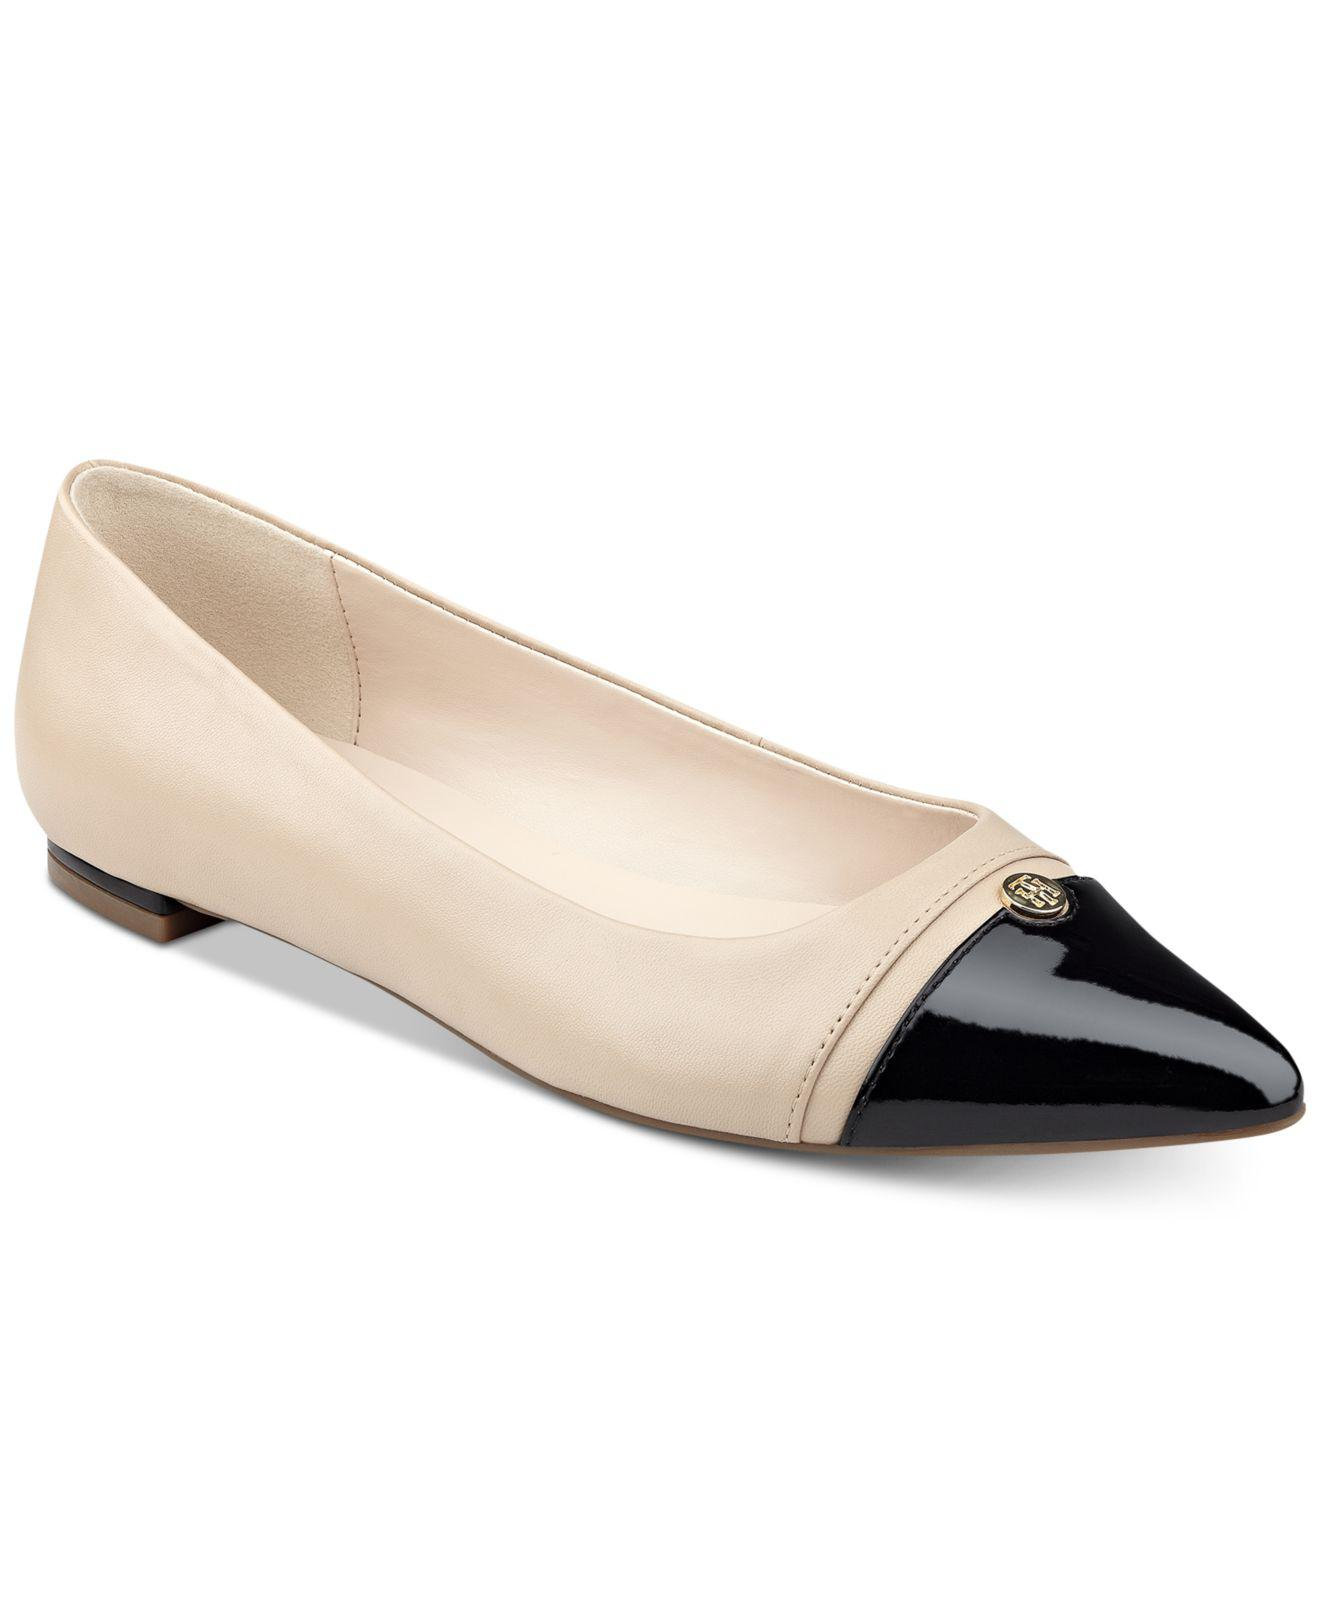 5b64c06a8a40db Lyst - Tommy Hilfiger Thalia Pointed-toe Flats in Natural